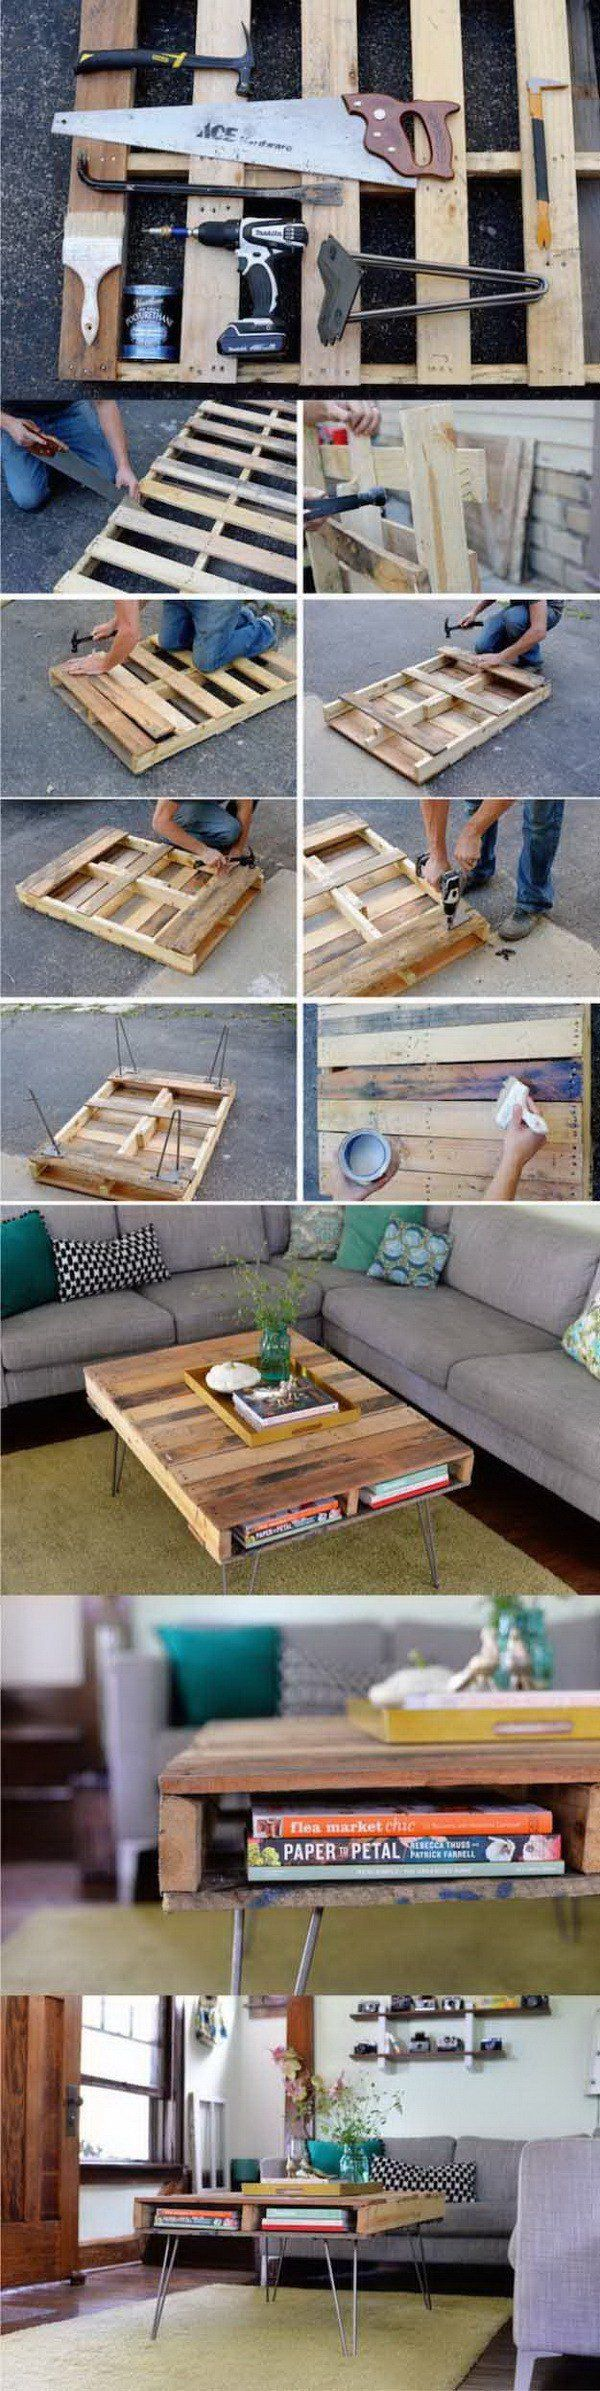 51 do it yourself furniture hacks to imitate | holztisch